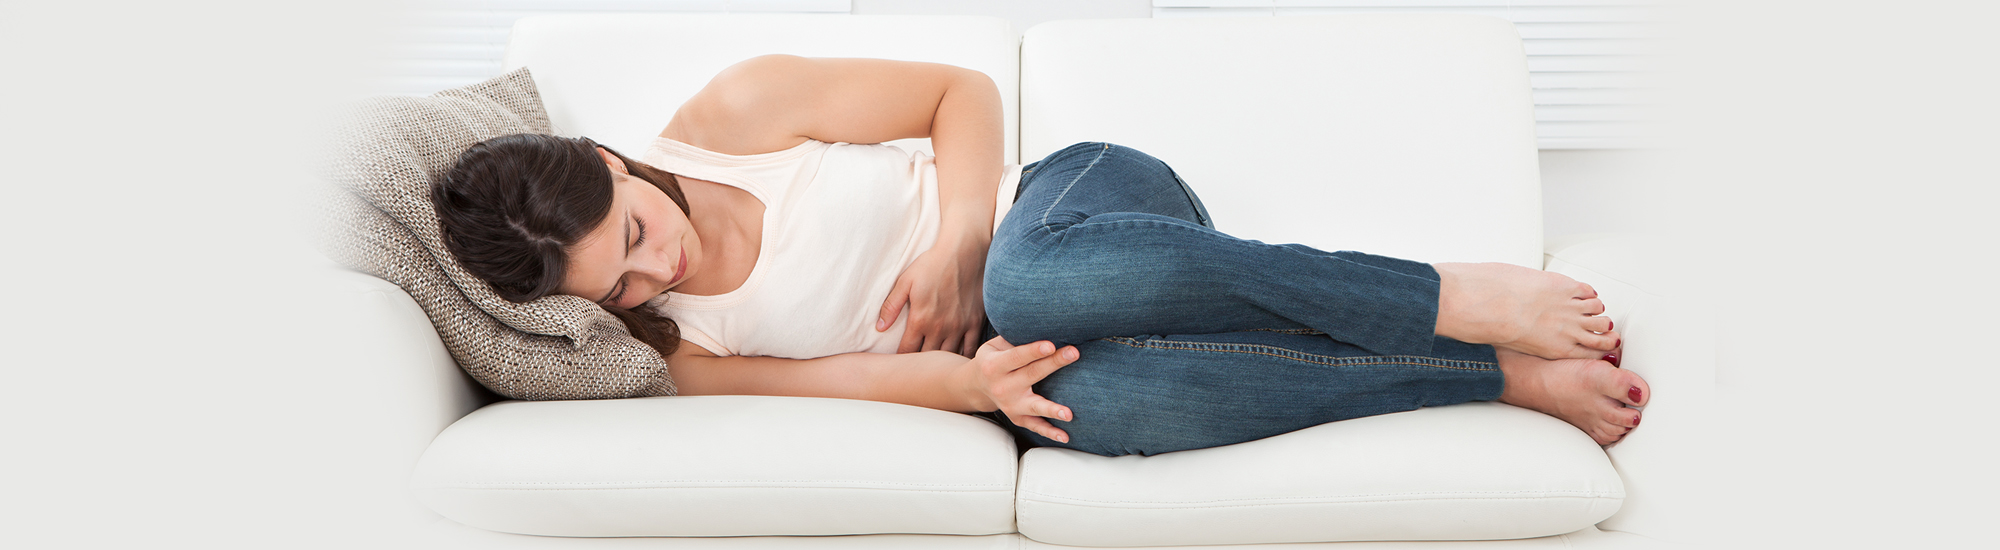 Ayurvedic treatment for Premenstrual syndrome -PMS- Diagnosis